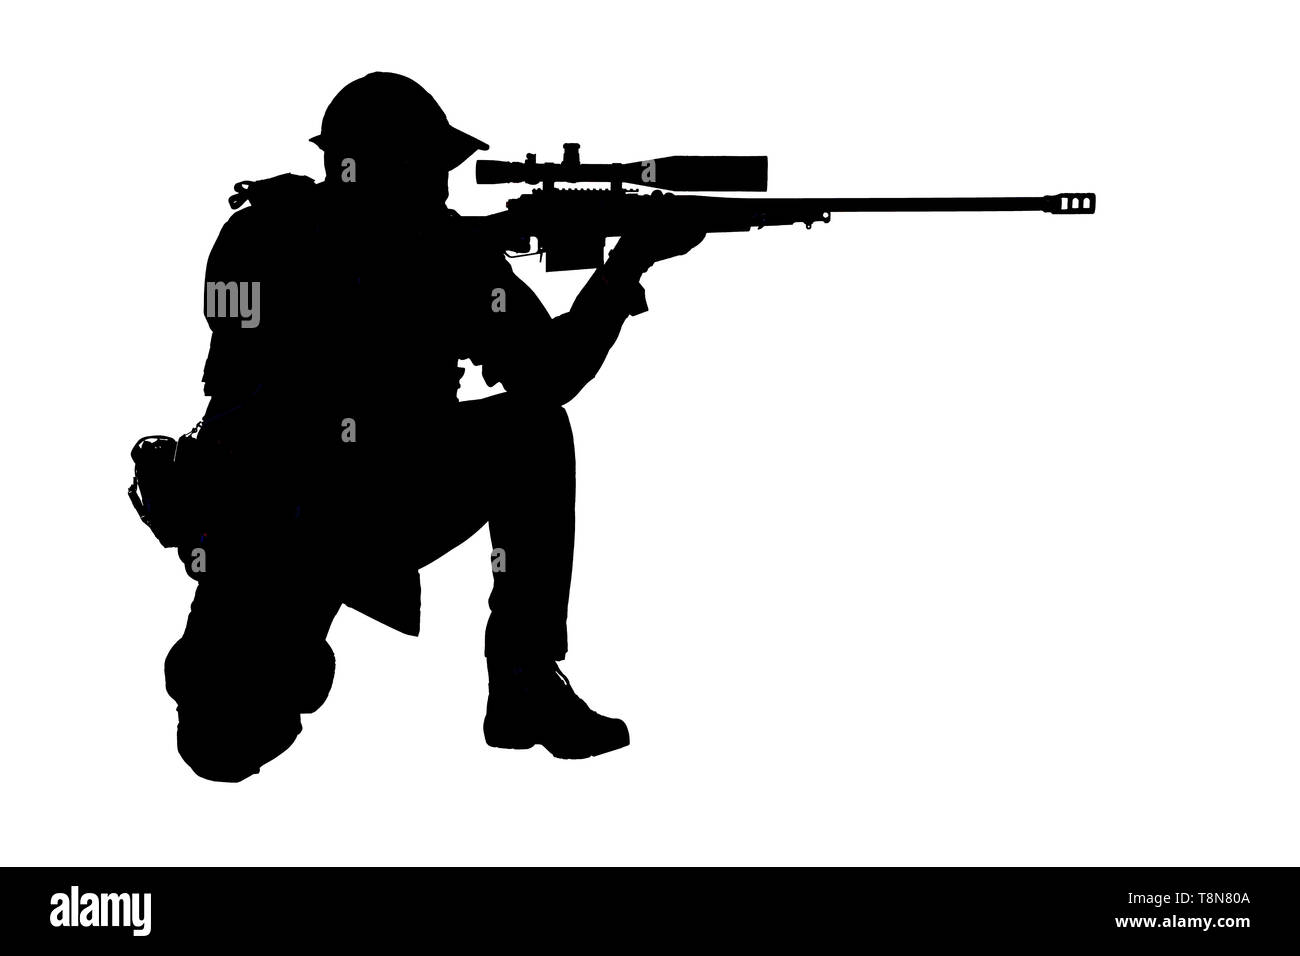 Police SWAT sniper shooting in sitting position - Stock Image